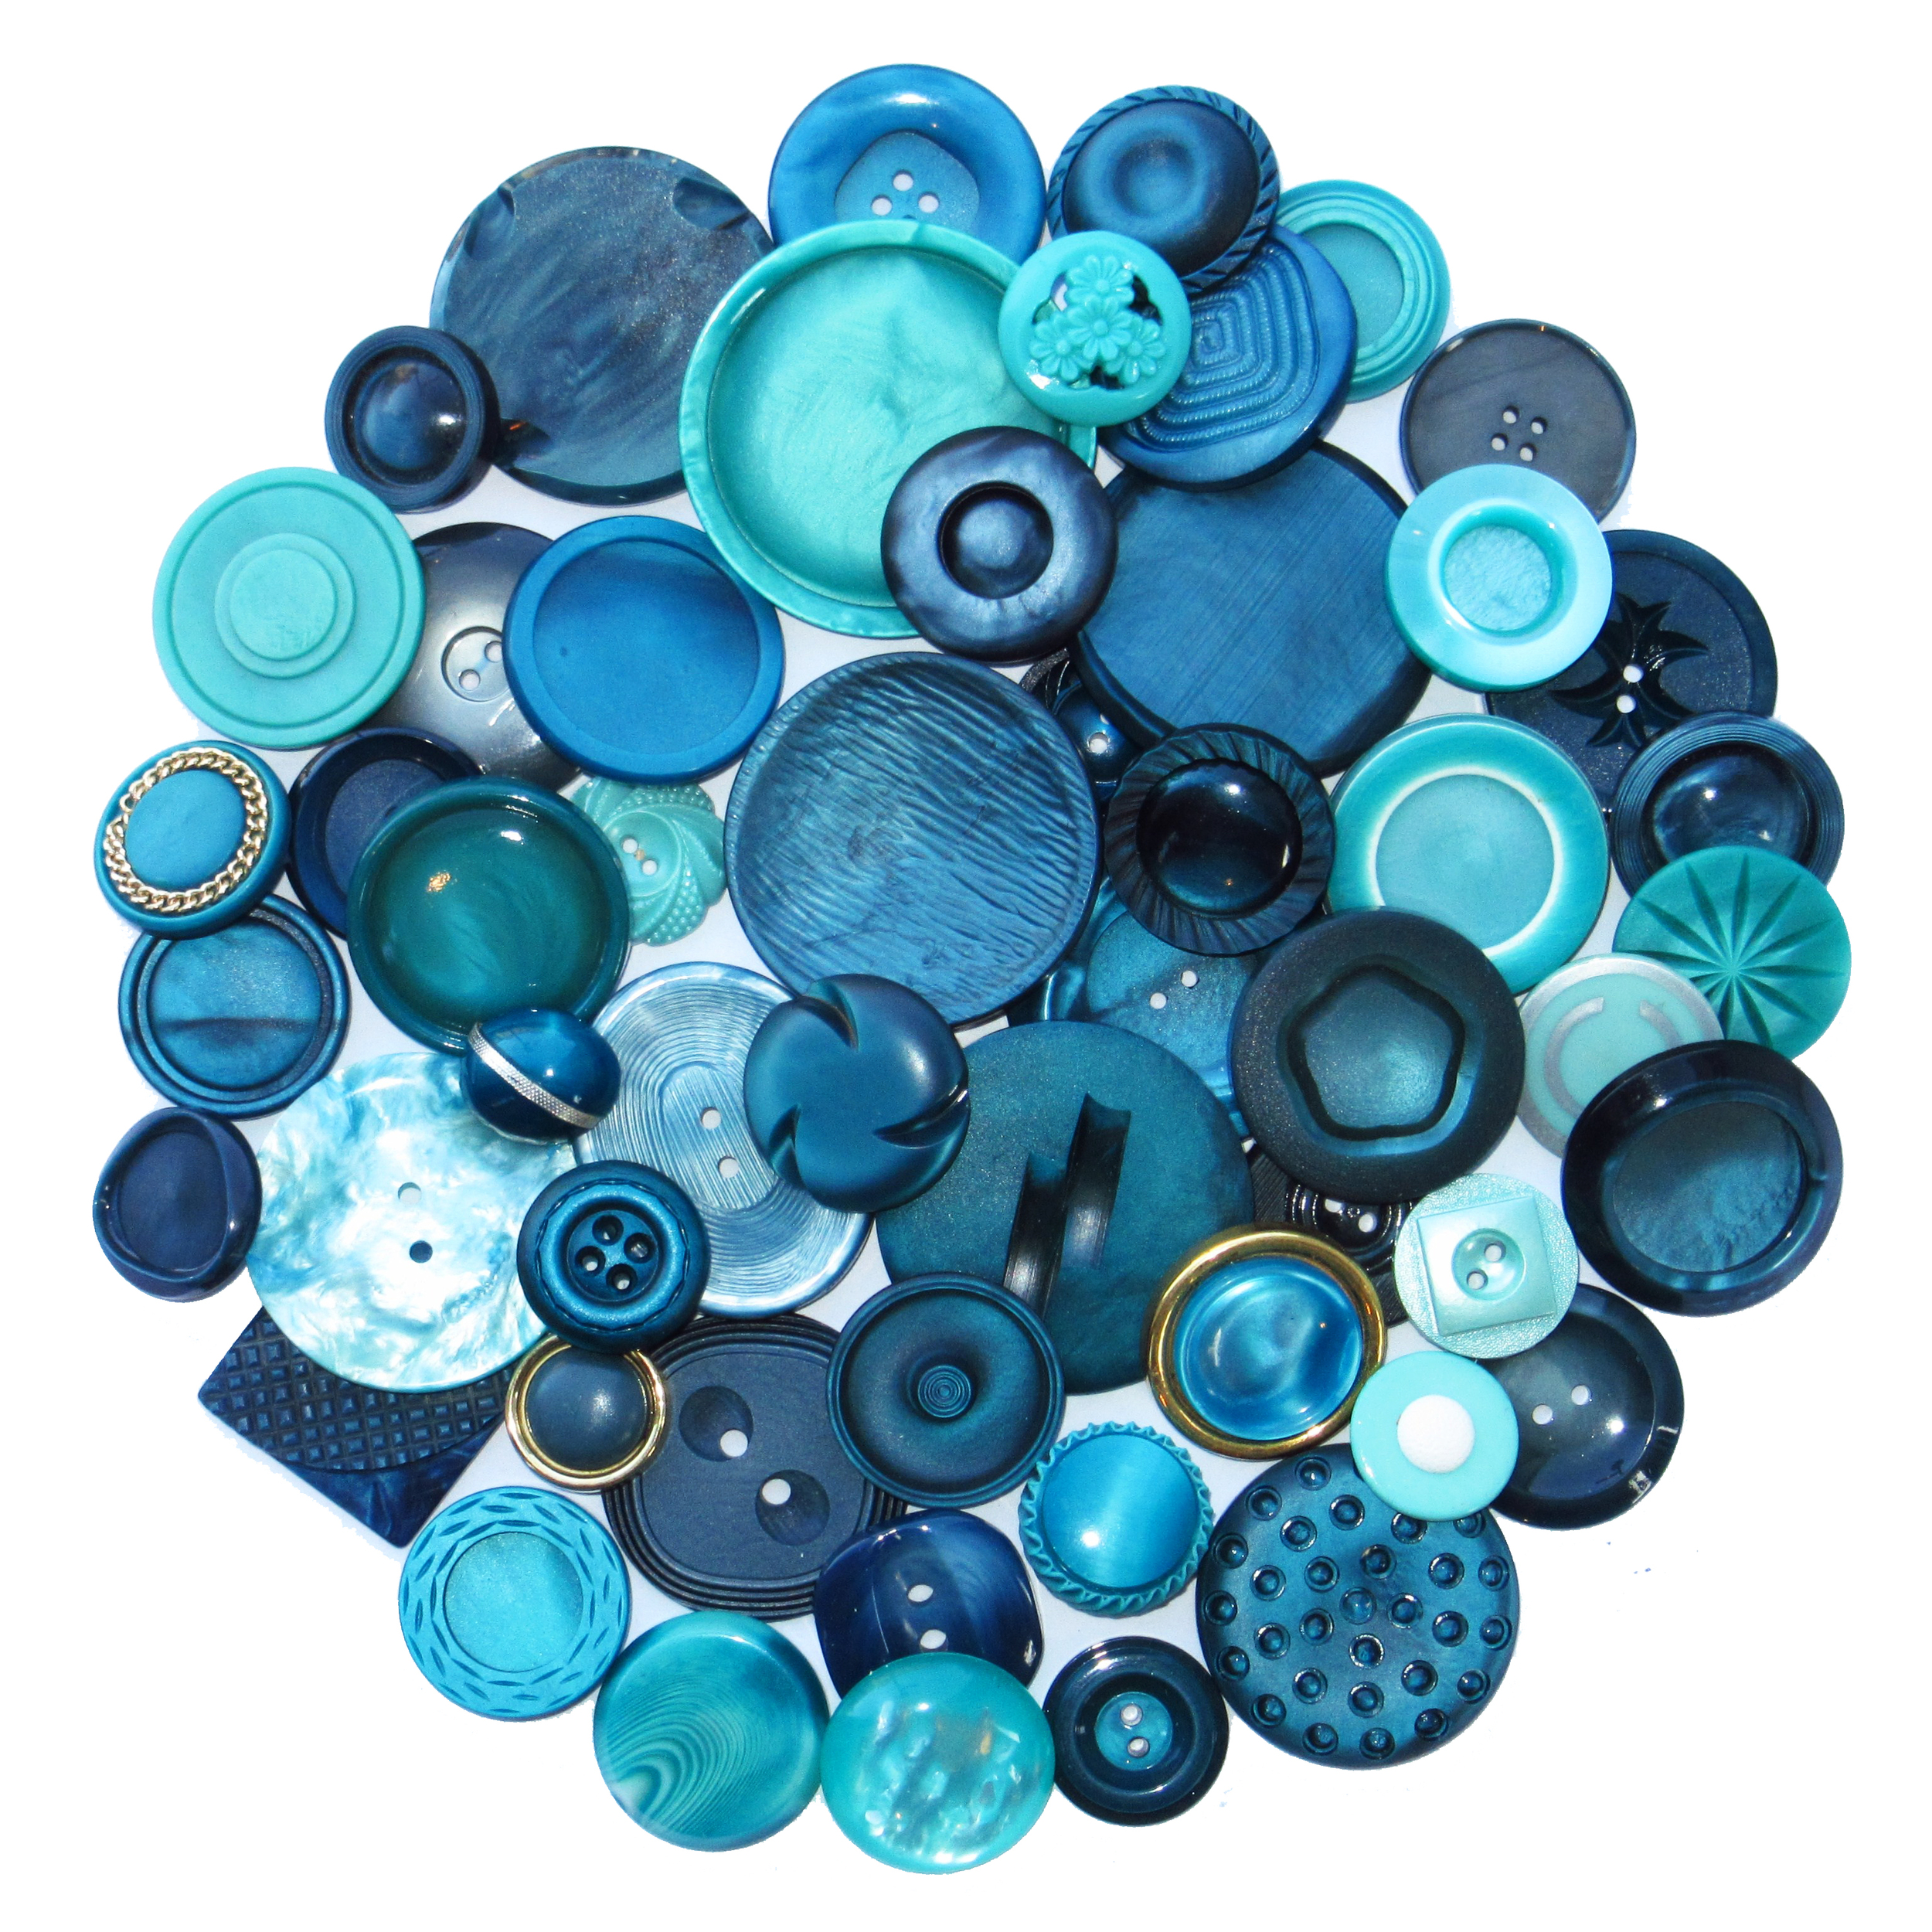 Turquoise blue buttons